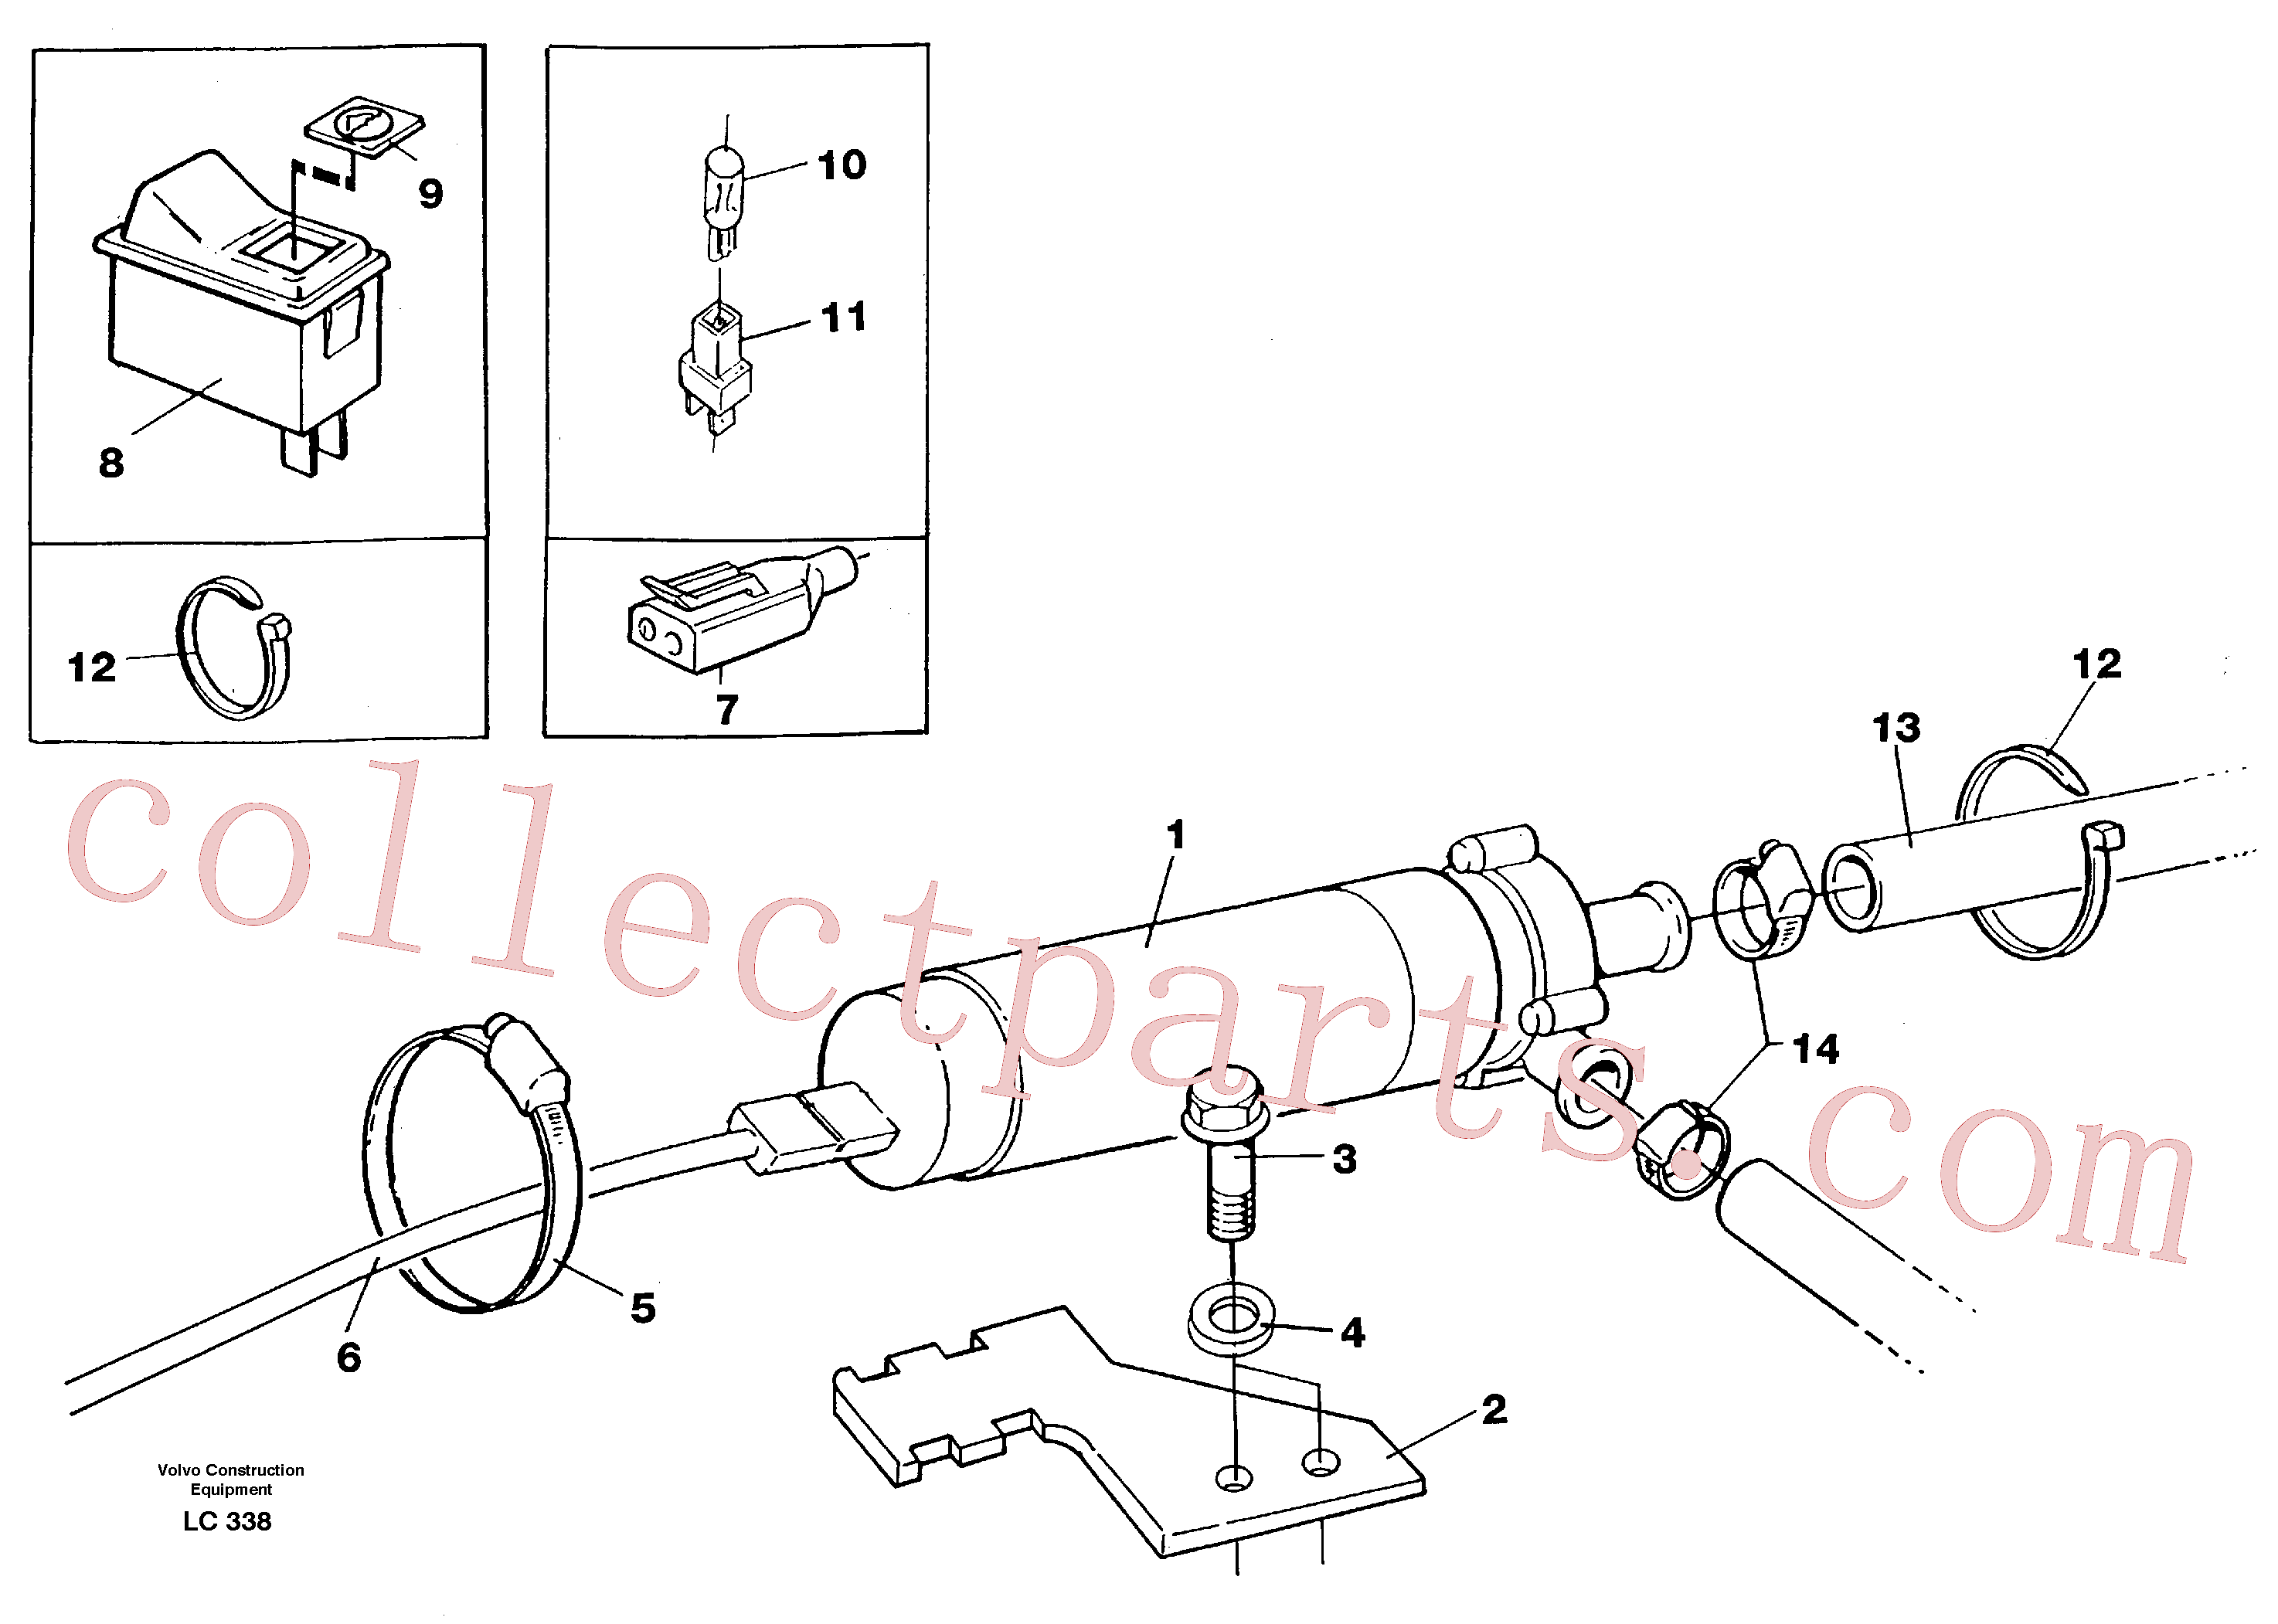 VOE13960148 for Volvo Cirkulation pump(LC338 assembly)